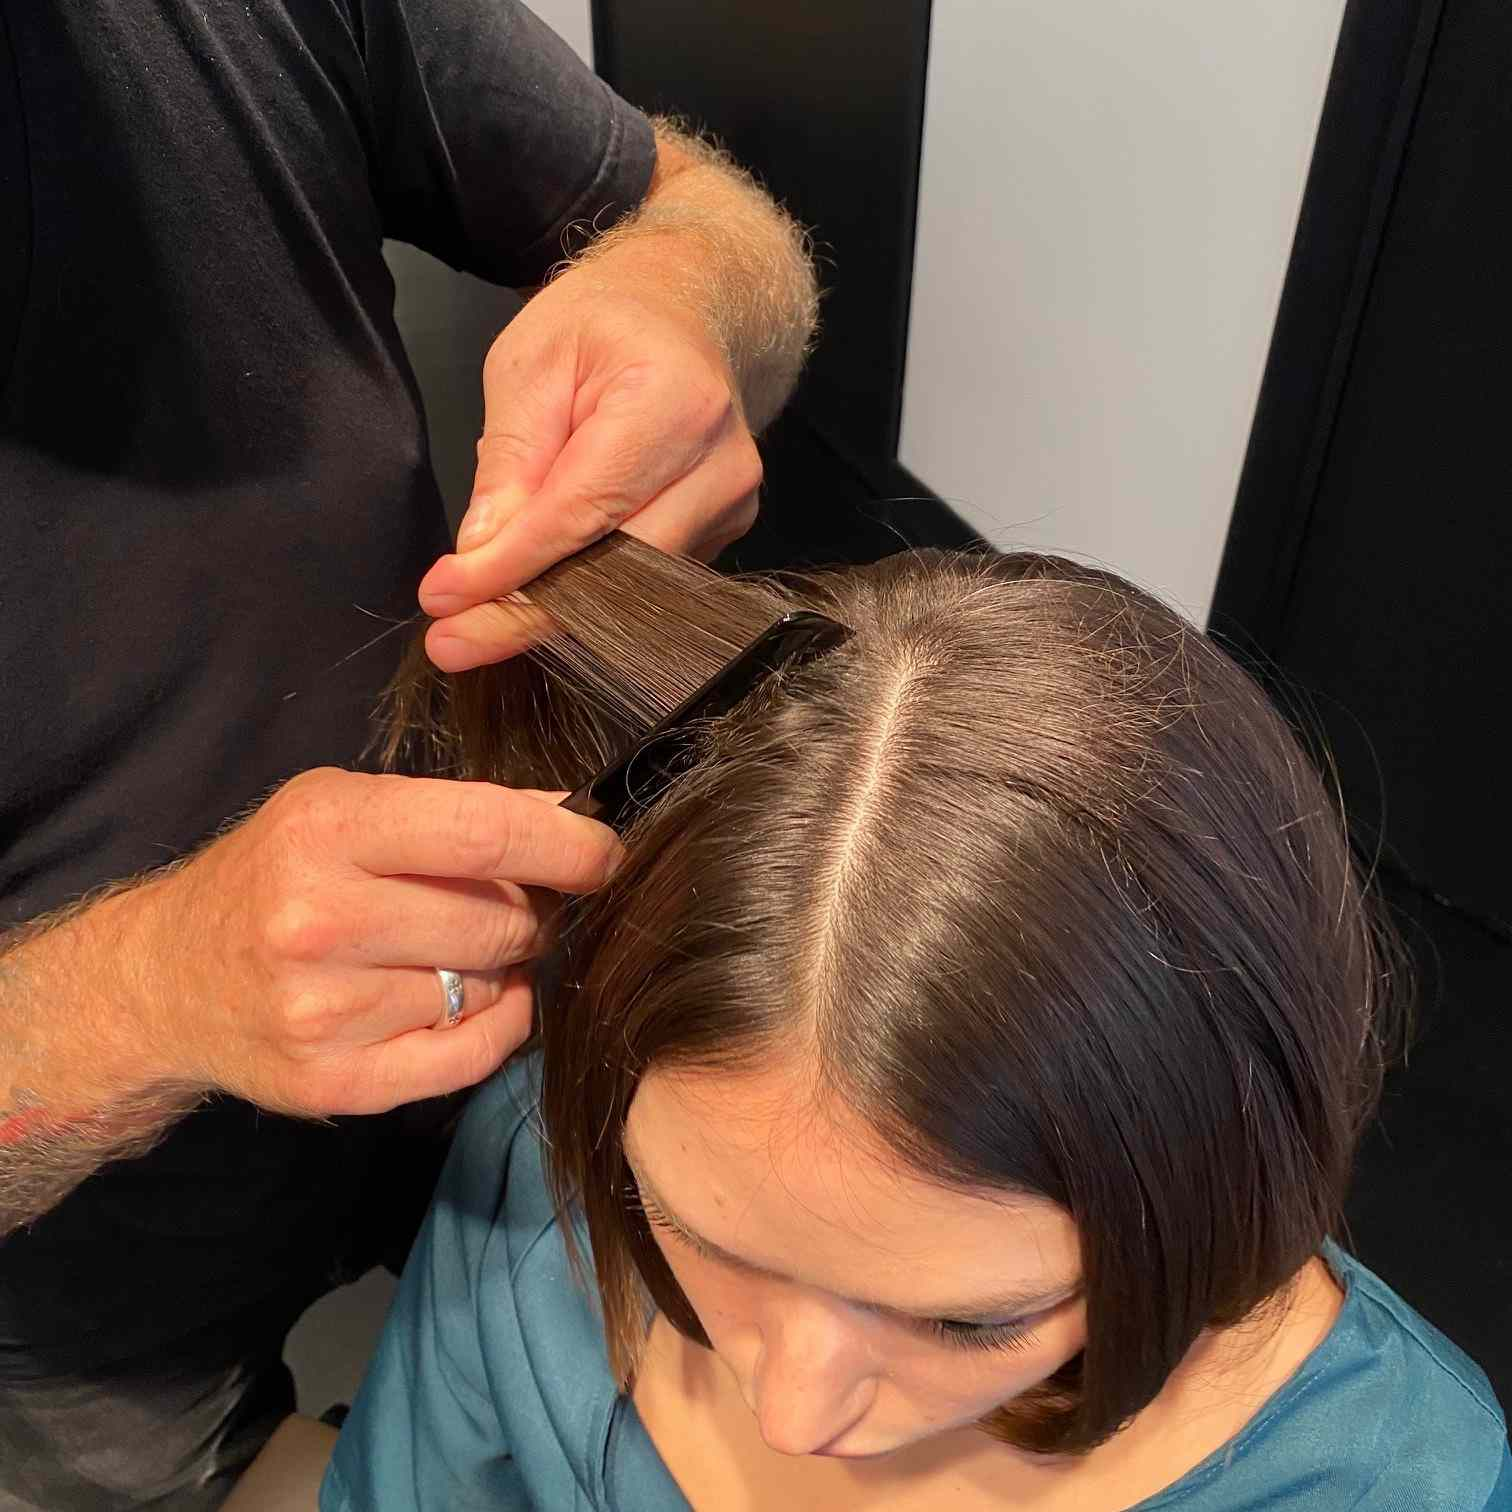 Hairstylist teasing client's hair with a comb